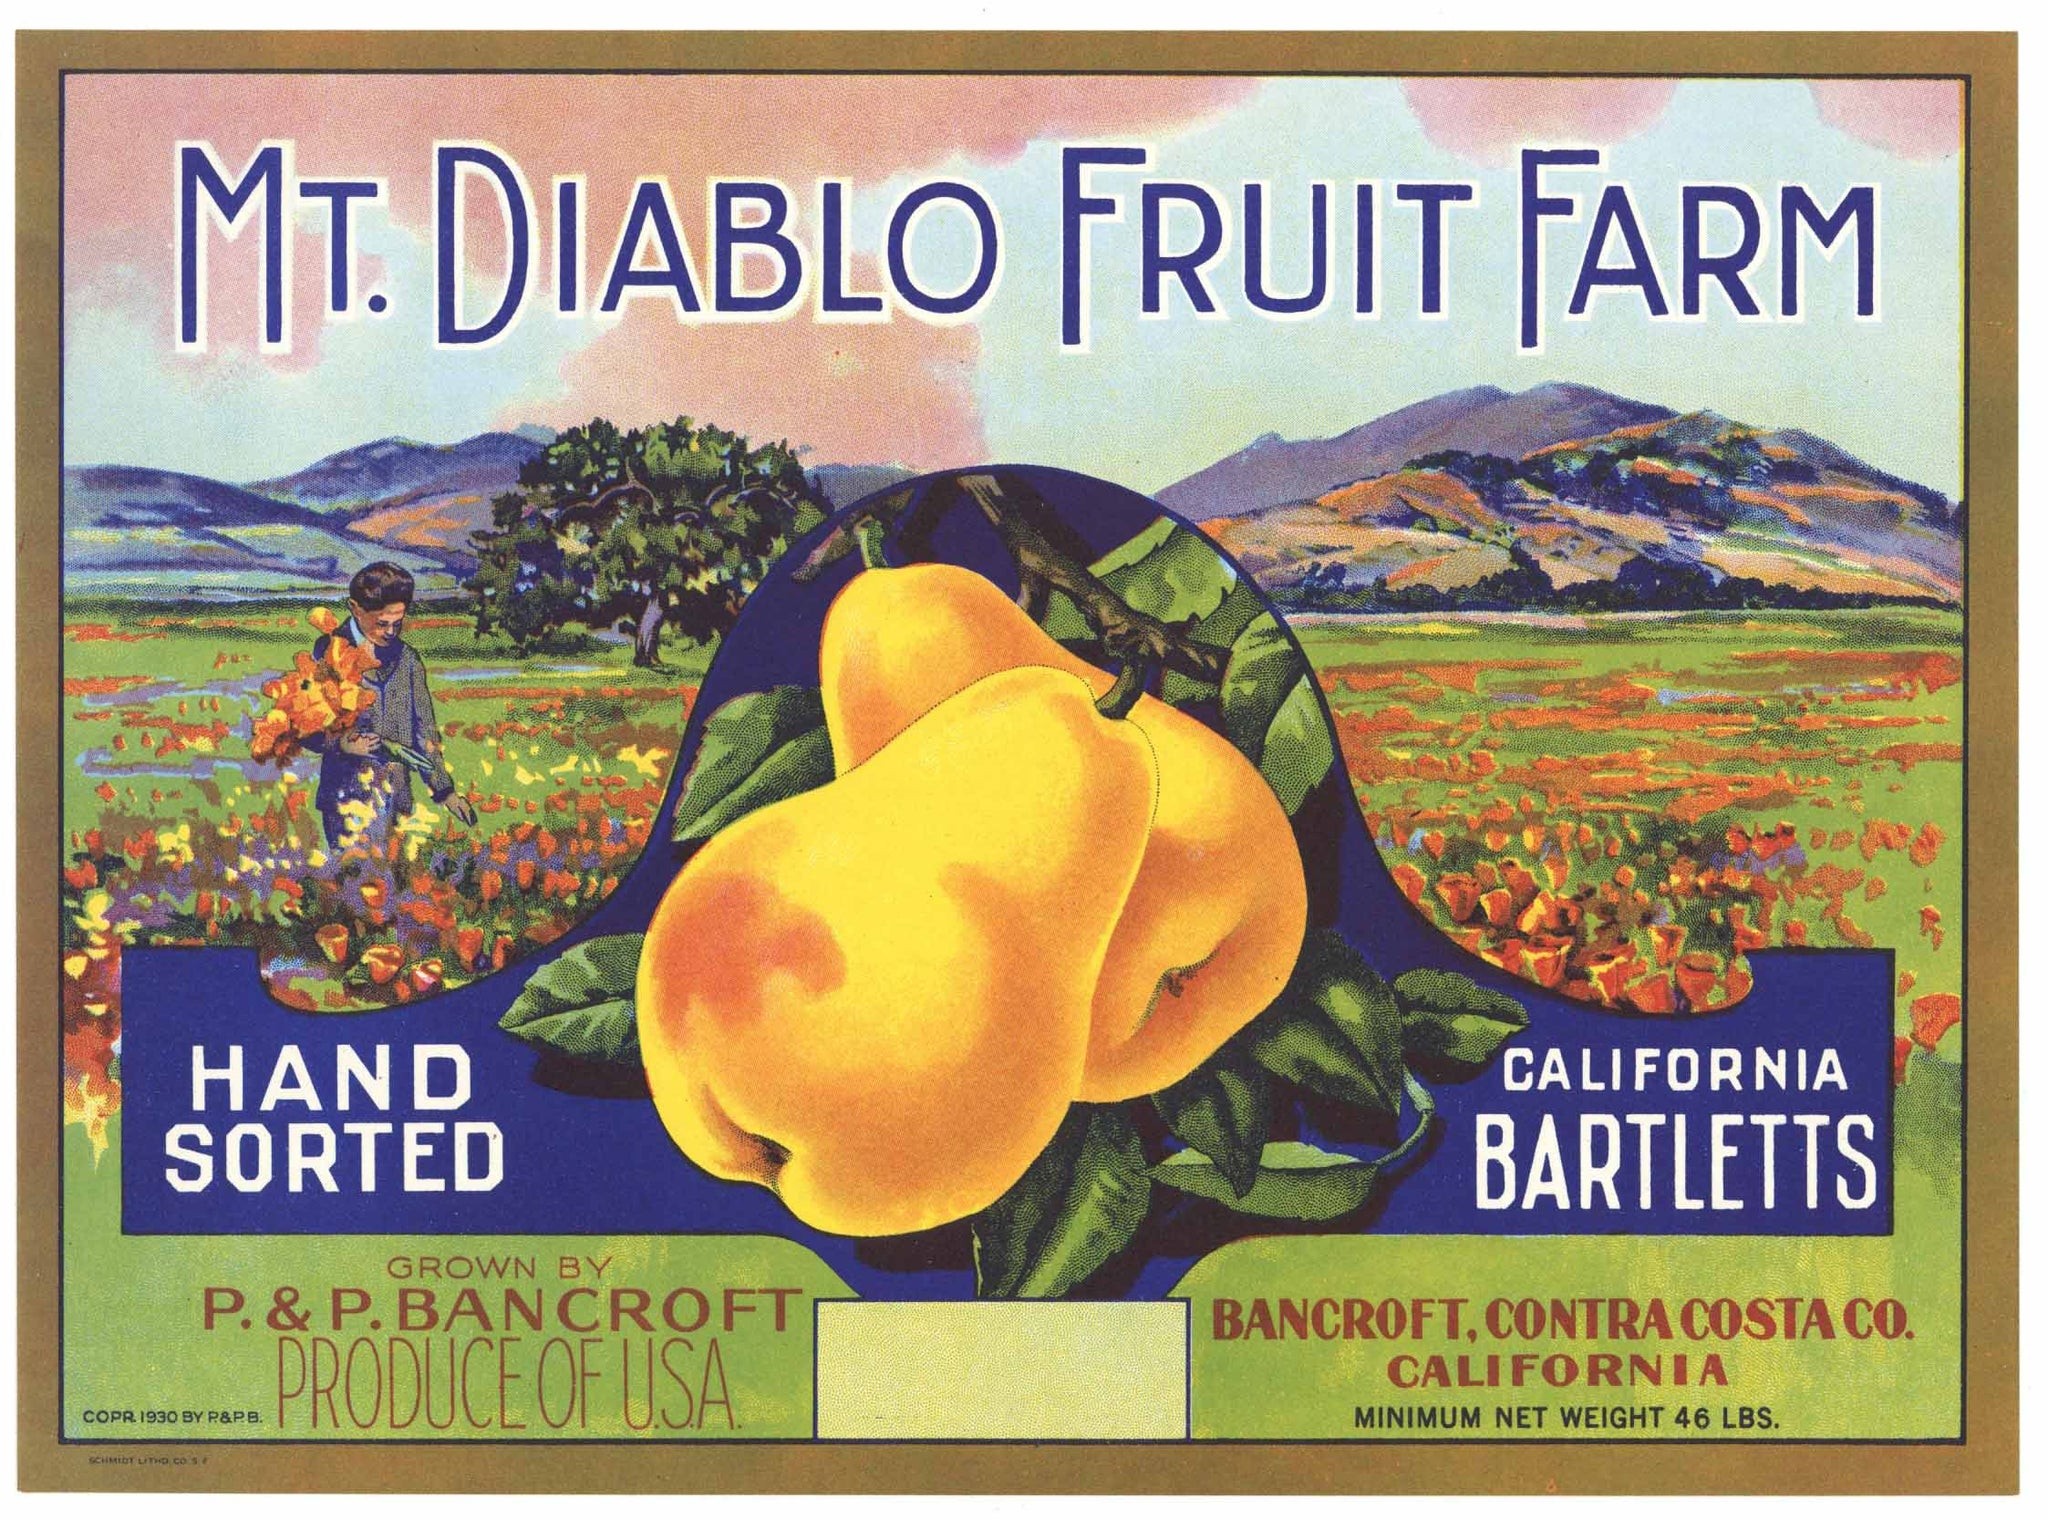 Mt. Diablo Fruit Farm Brand Vintage Contra Costa Pear Fruit Crate Label